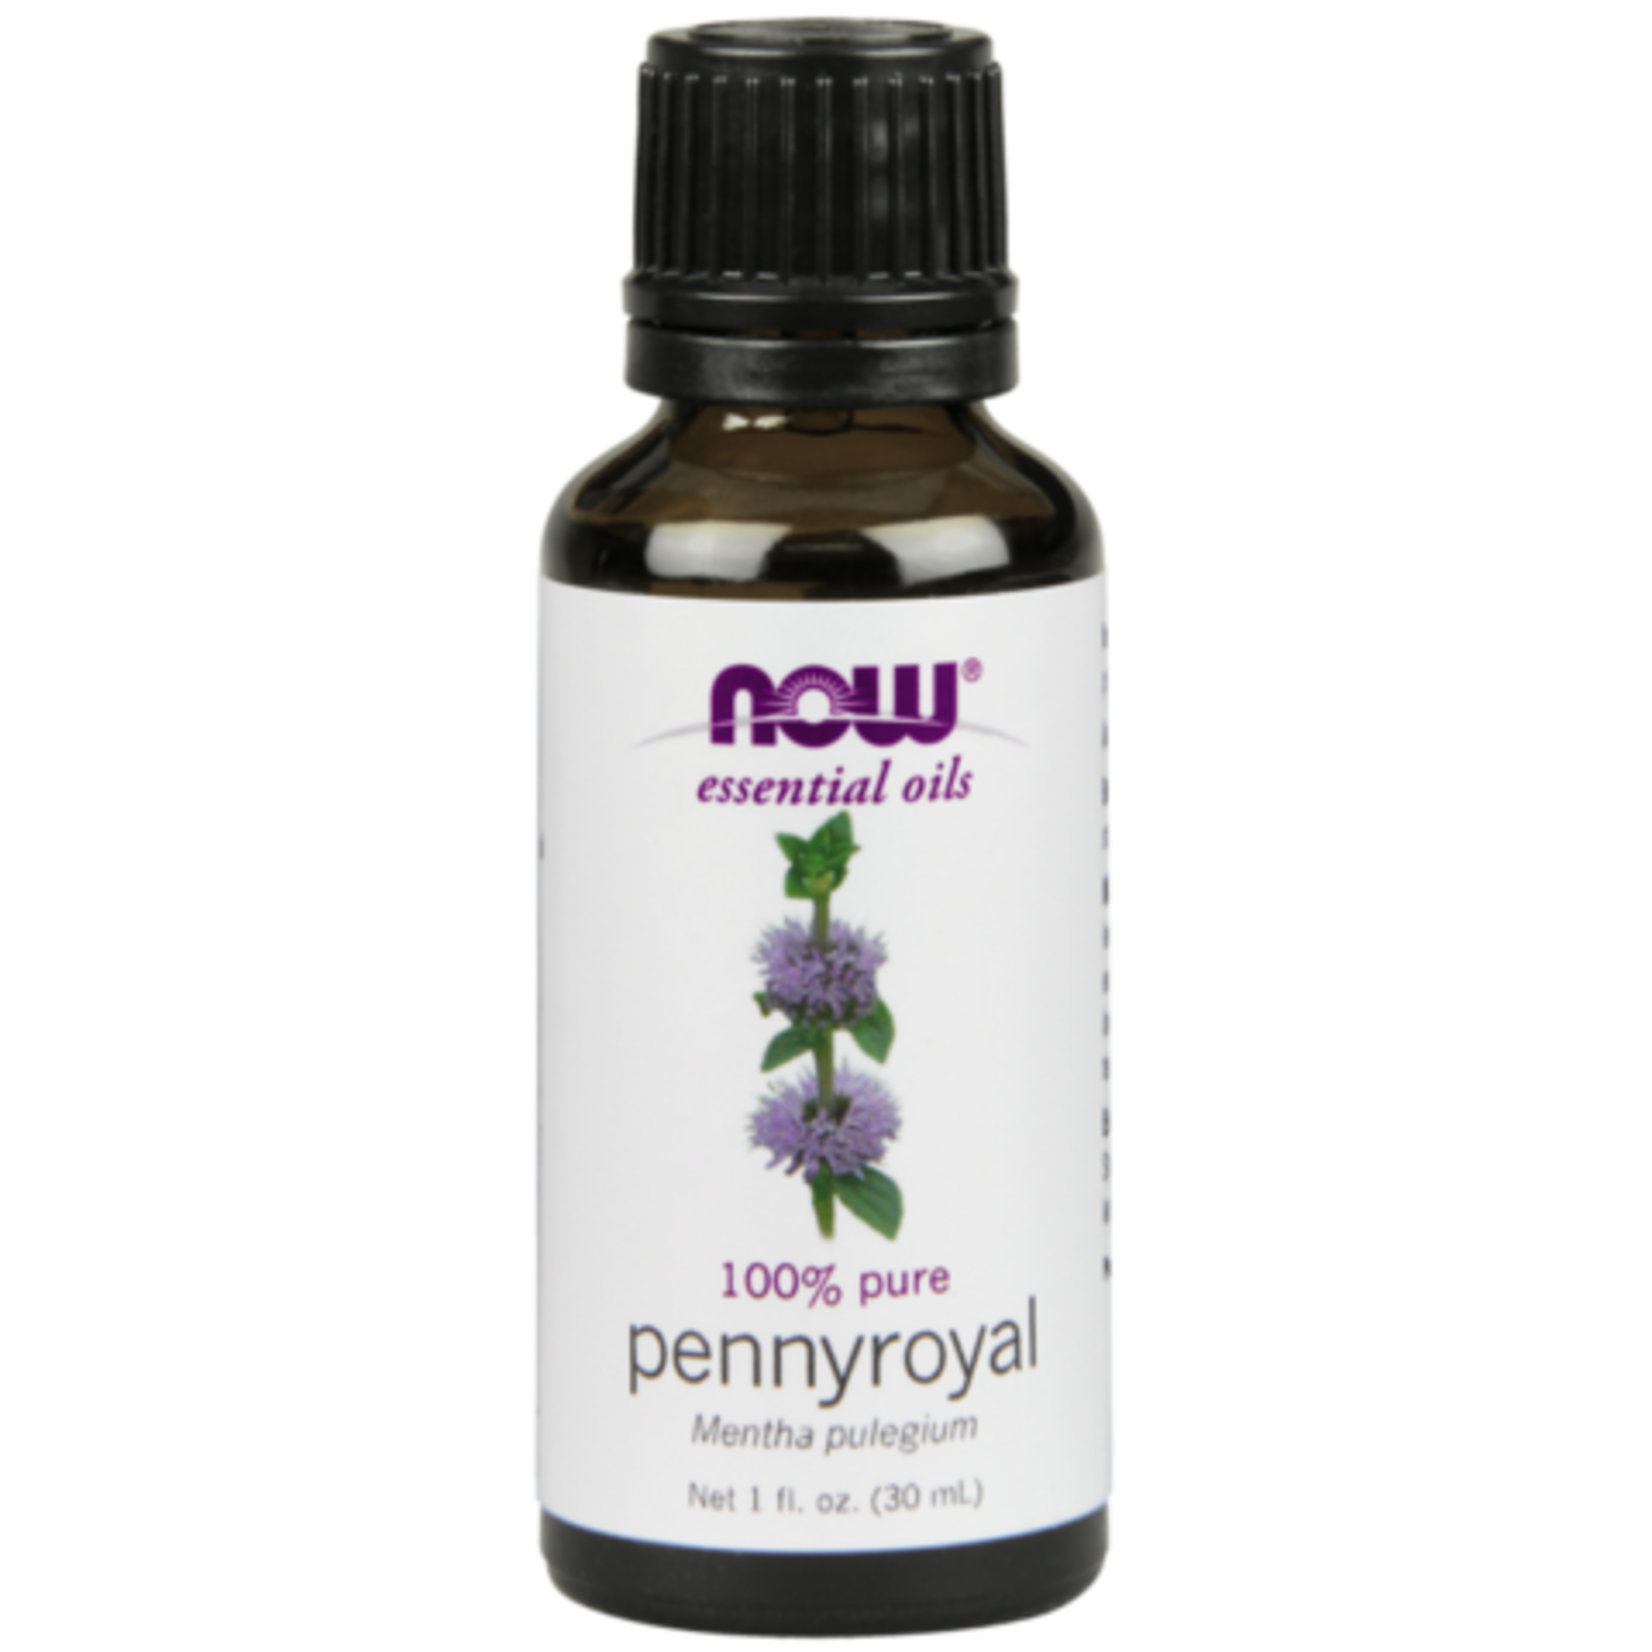 Now Now Pennyroyal Essential Oil 30ml